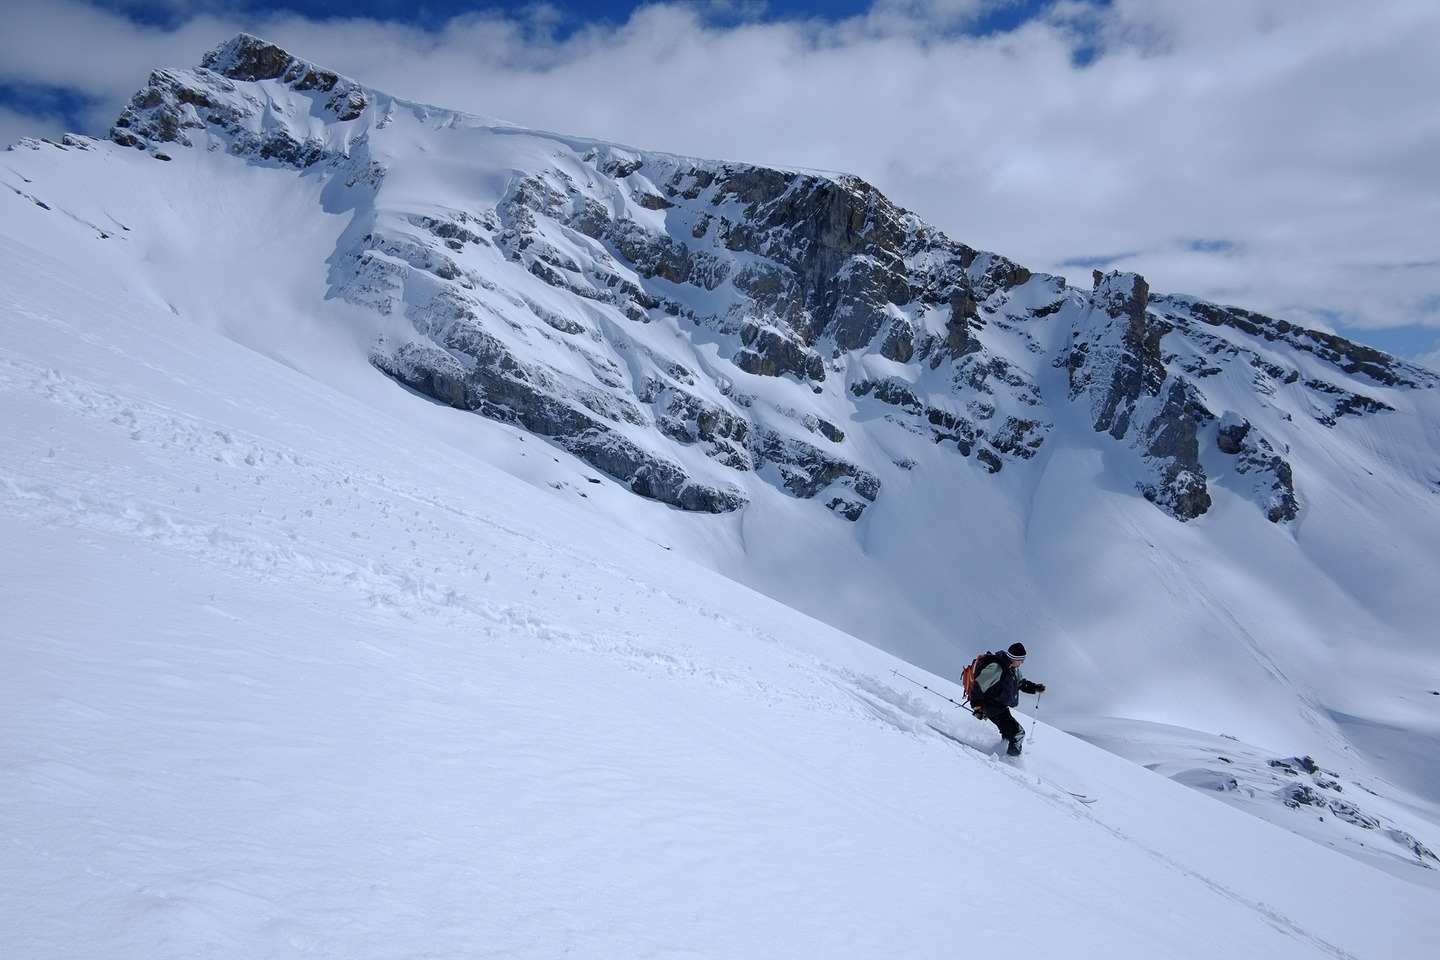 Skiing the west face of Ramp Peak.